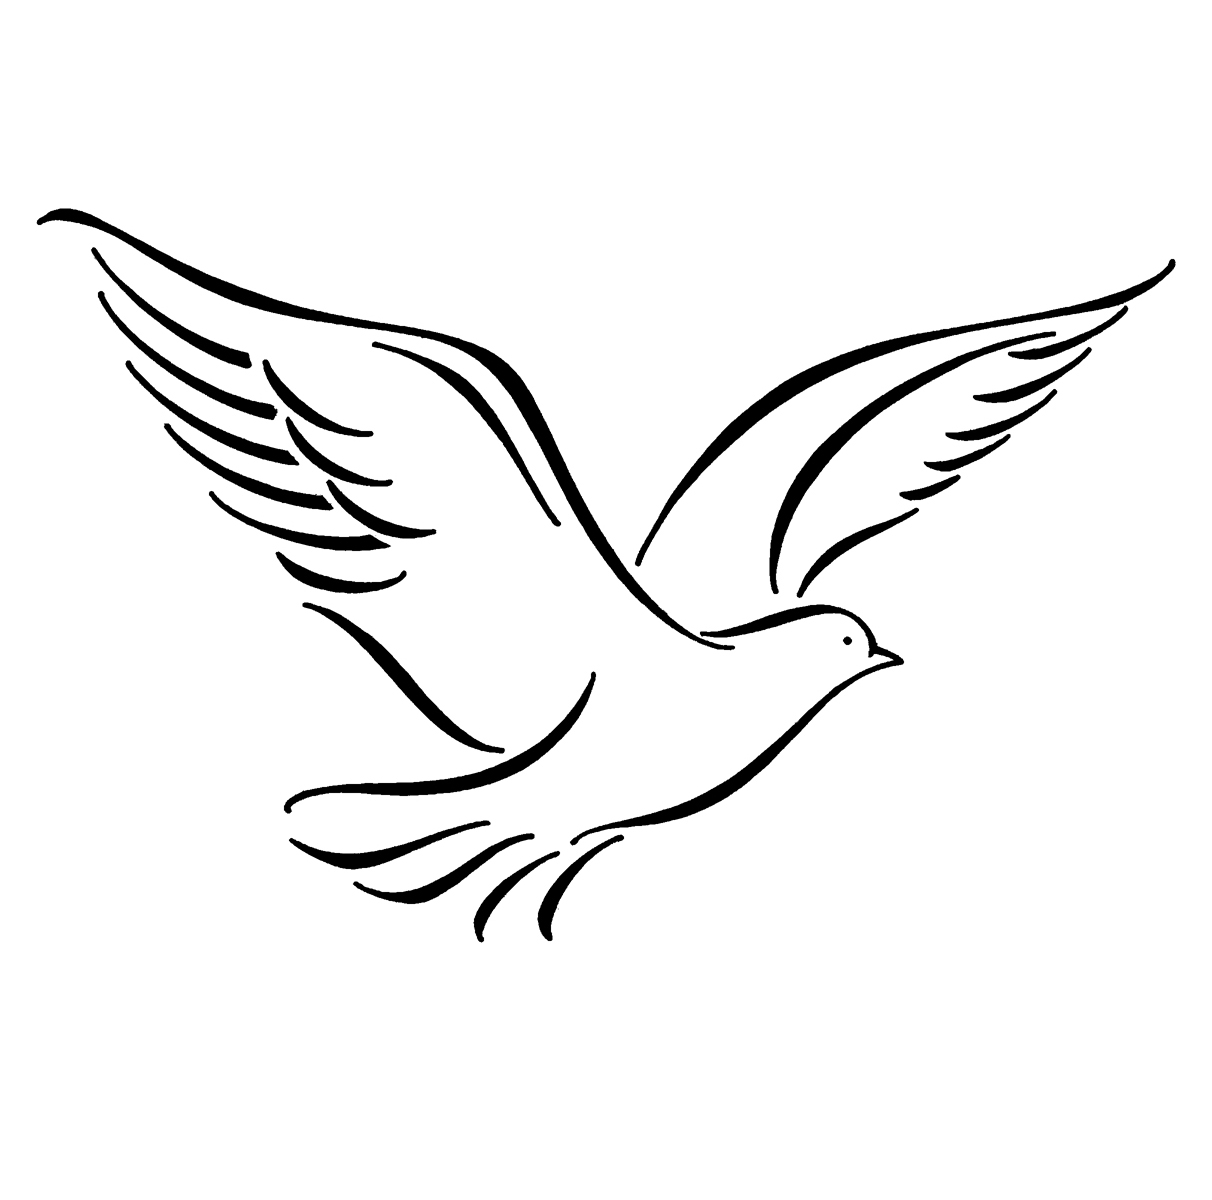 hight resolution of dove clipart art dove graphic dove image sharefaith page 3 clipartix